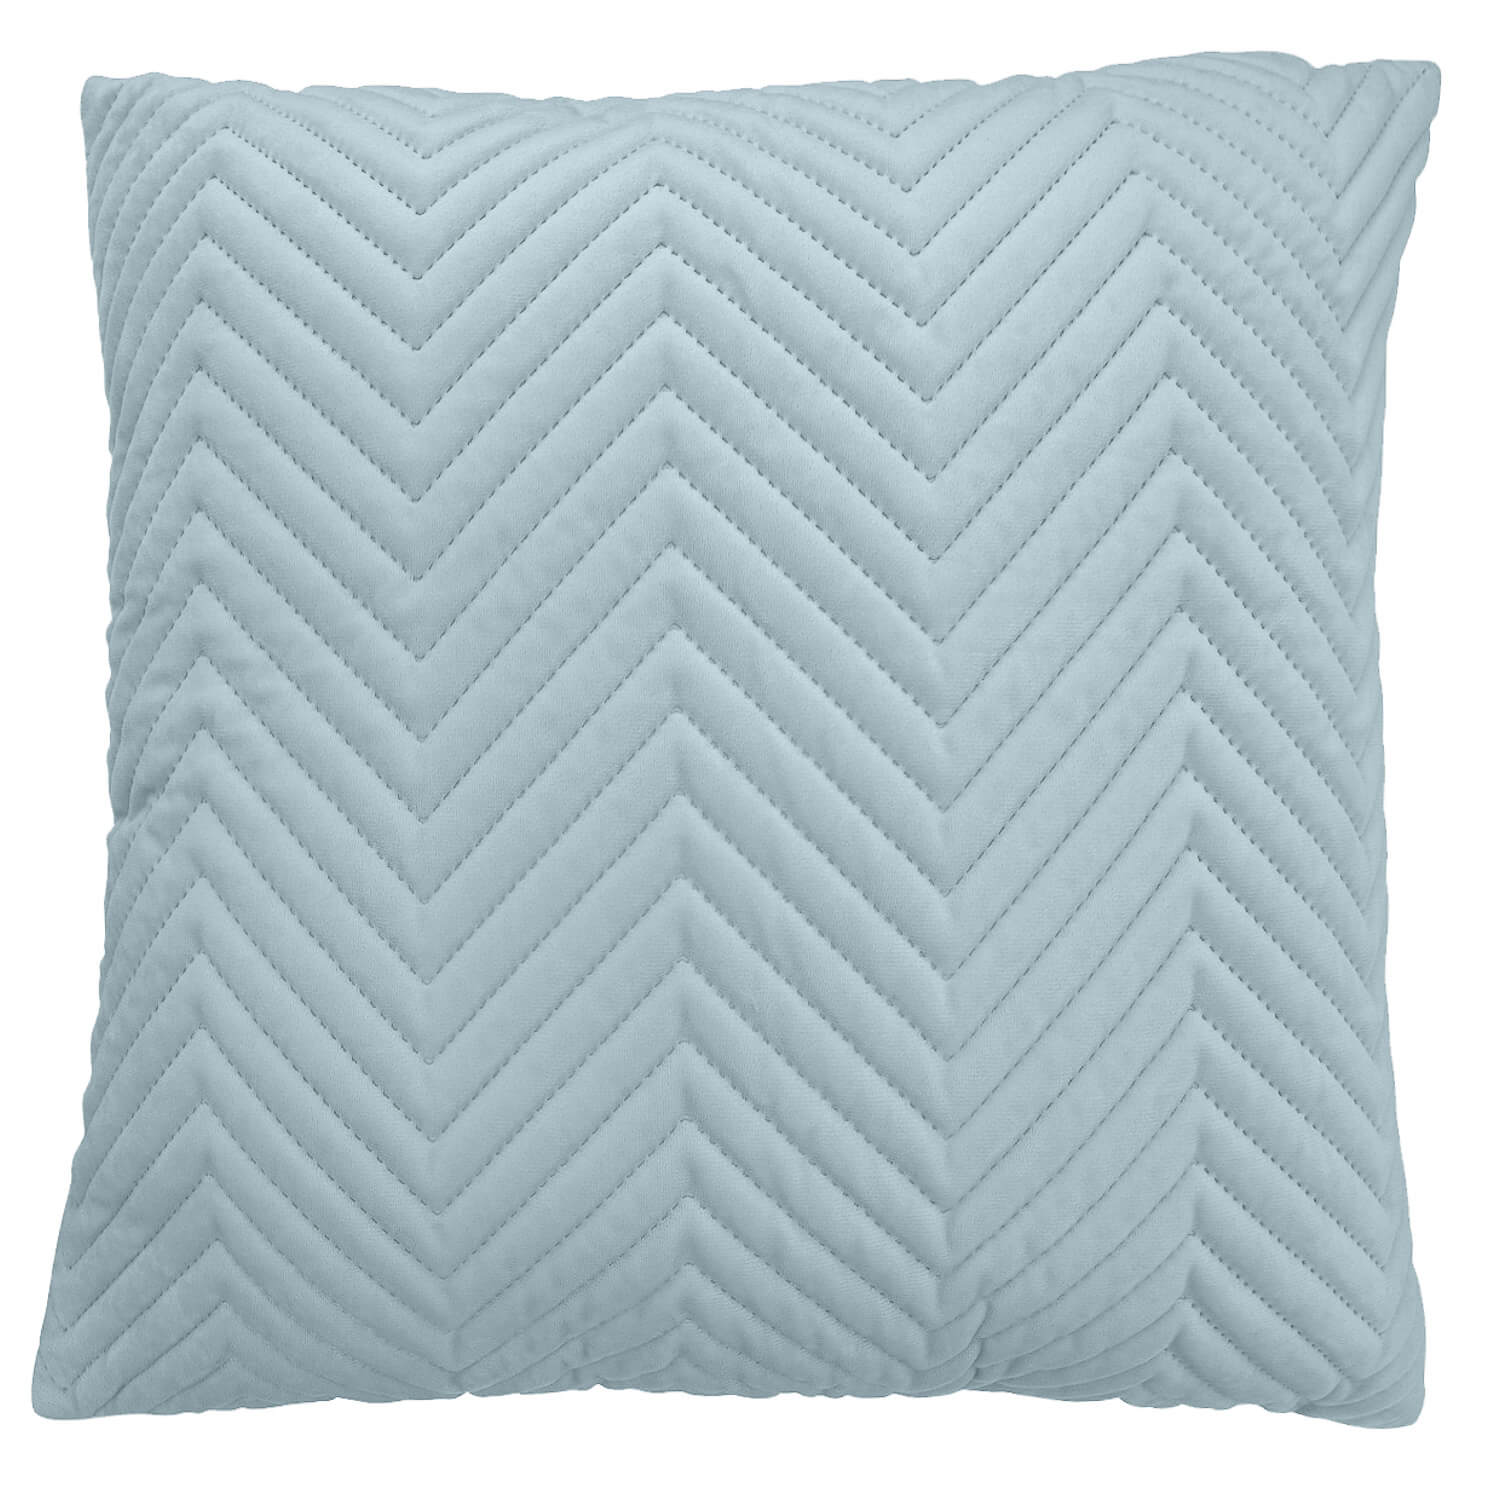 Triangle Stitch Cushion 58x58cm - Mint